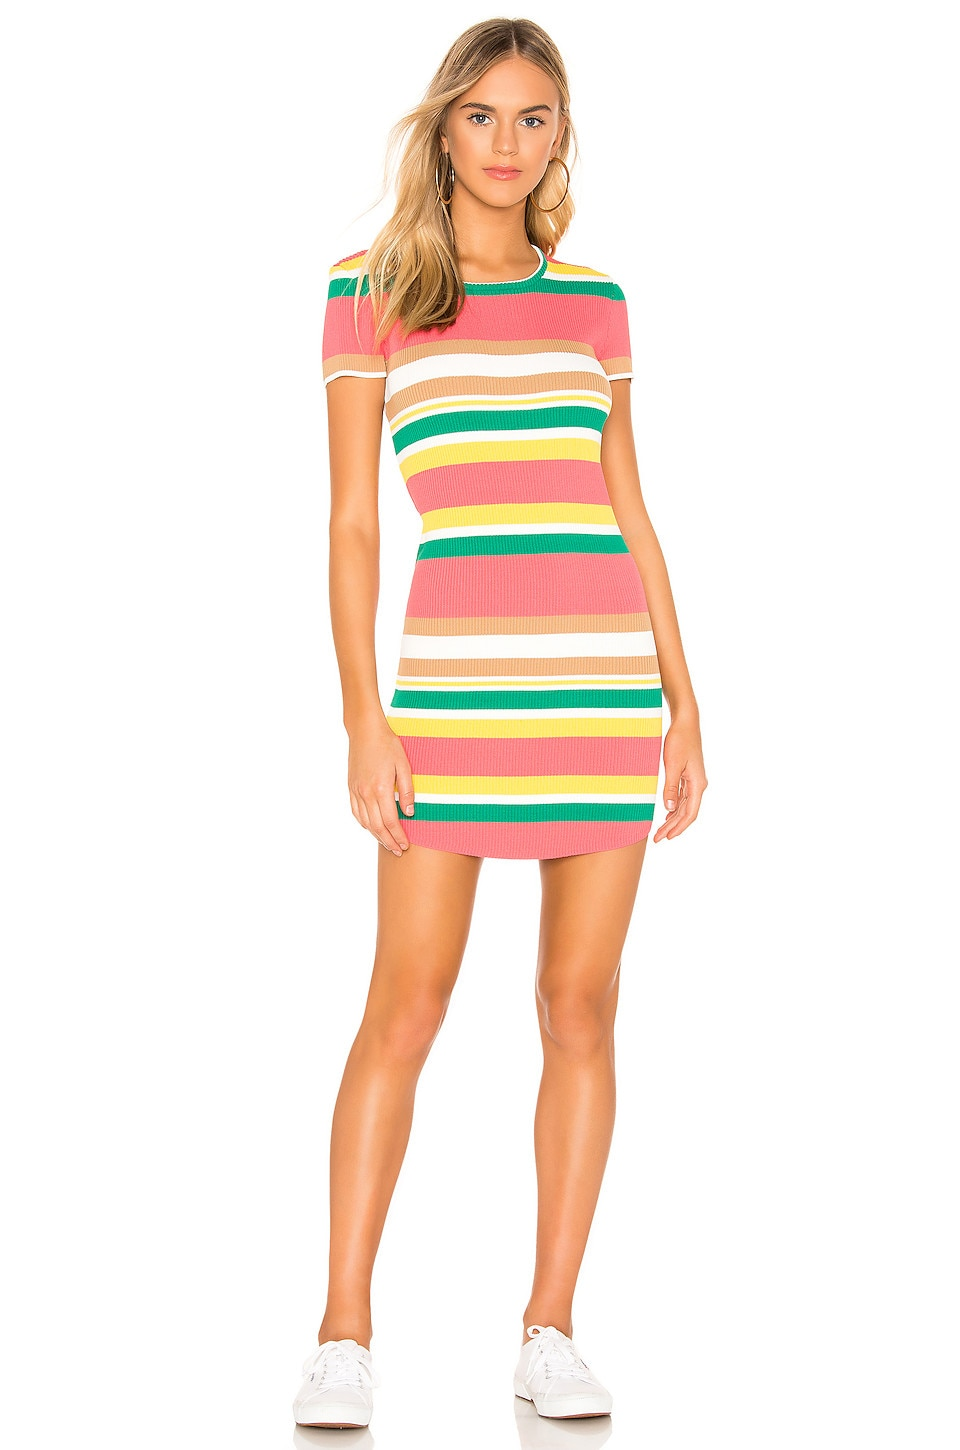 Callahan Fen Dress in Multi